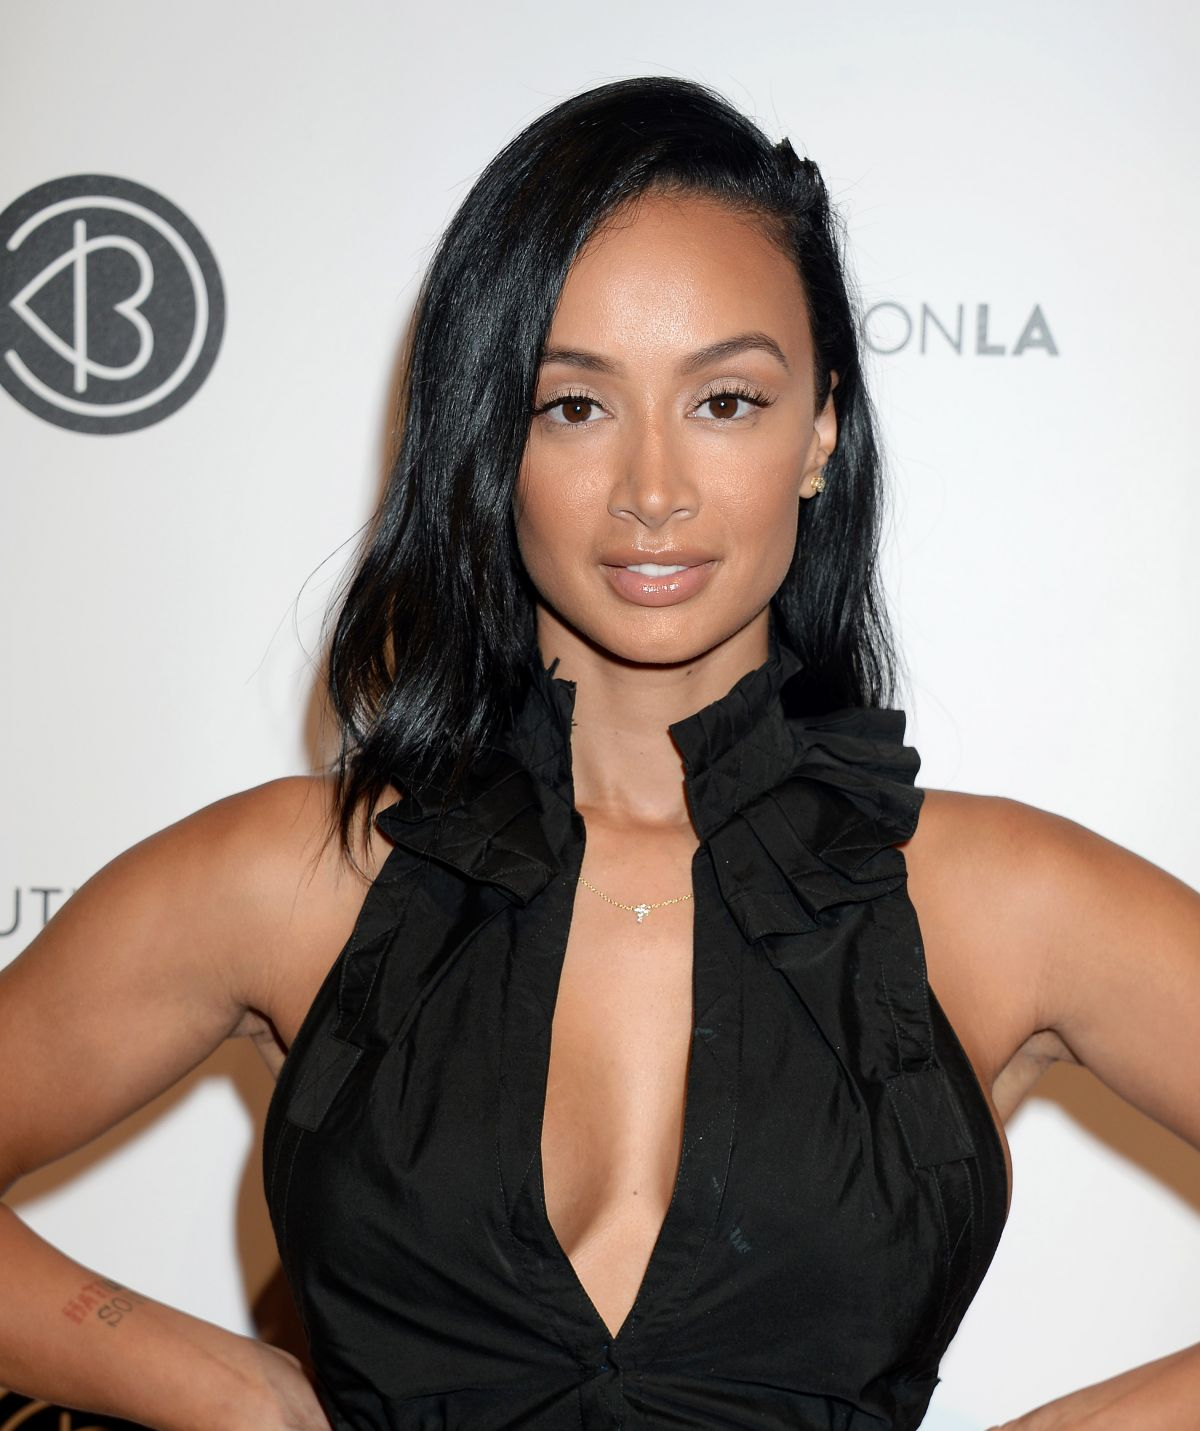 draya michele archives - page 3 of 4 - hawtcelebs - hawtcelebs